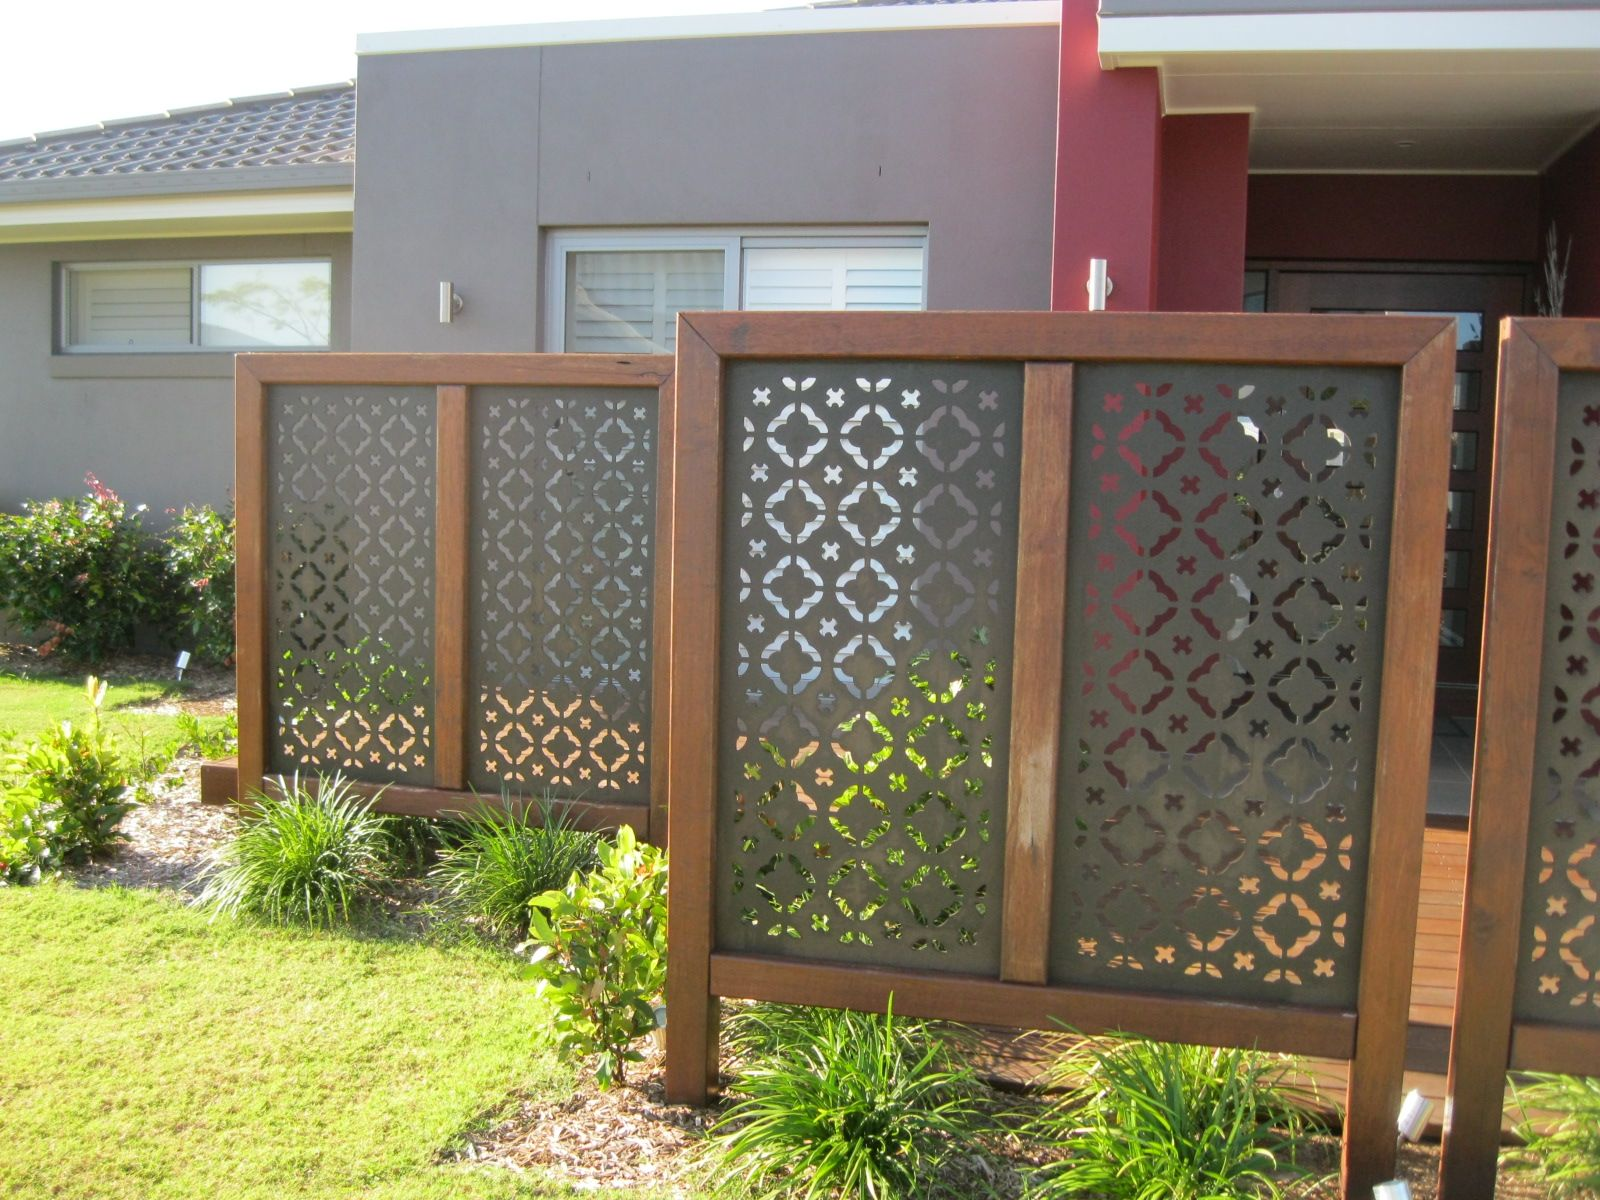 screen and the patio garden screening landscaping add charm your range panels fencing cheerfulness to